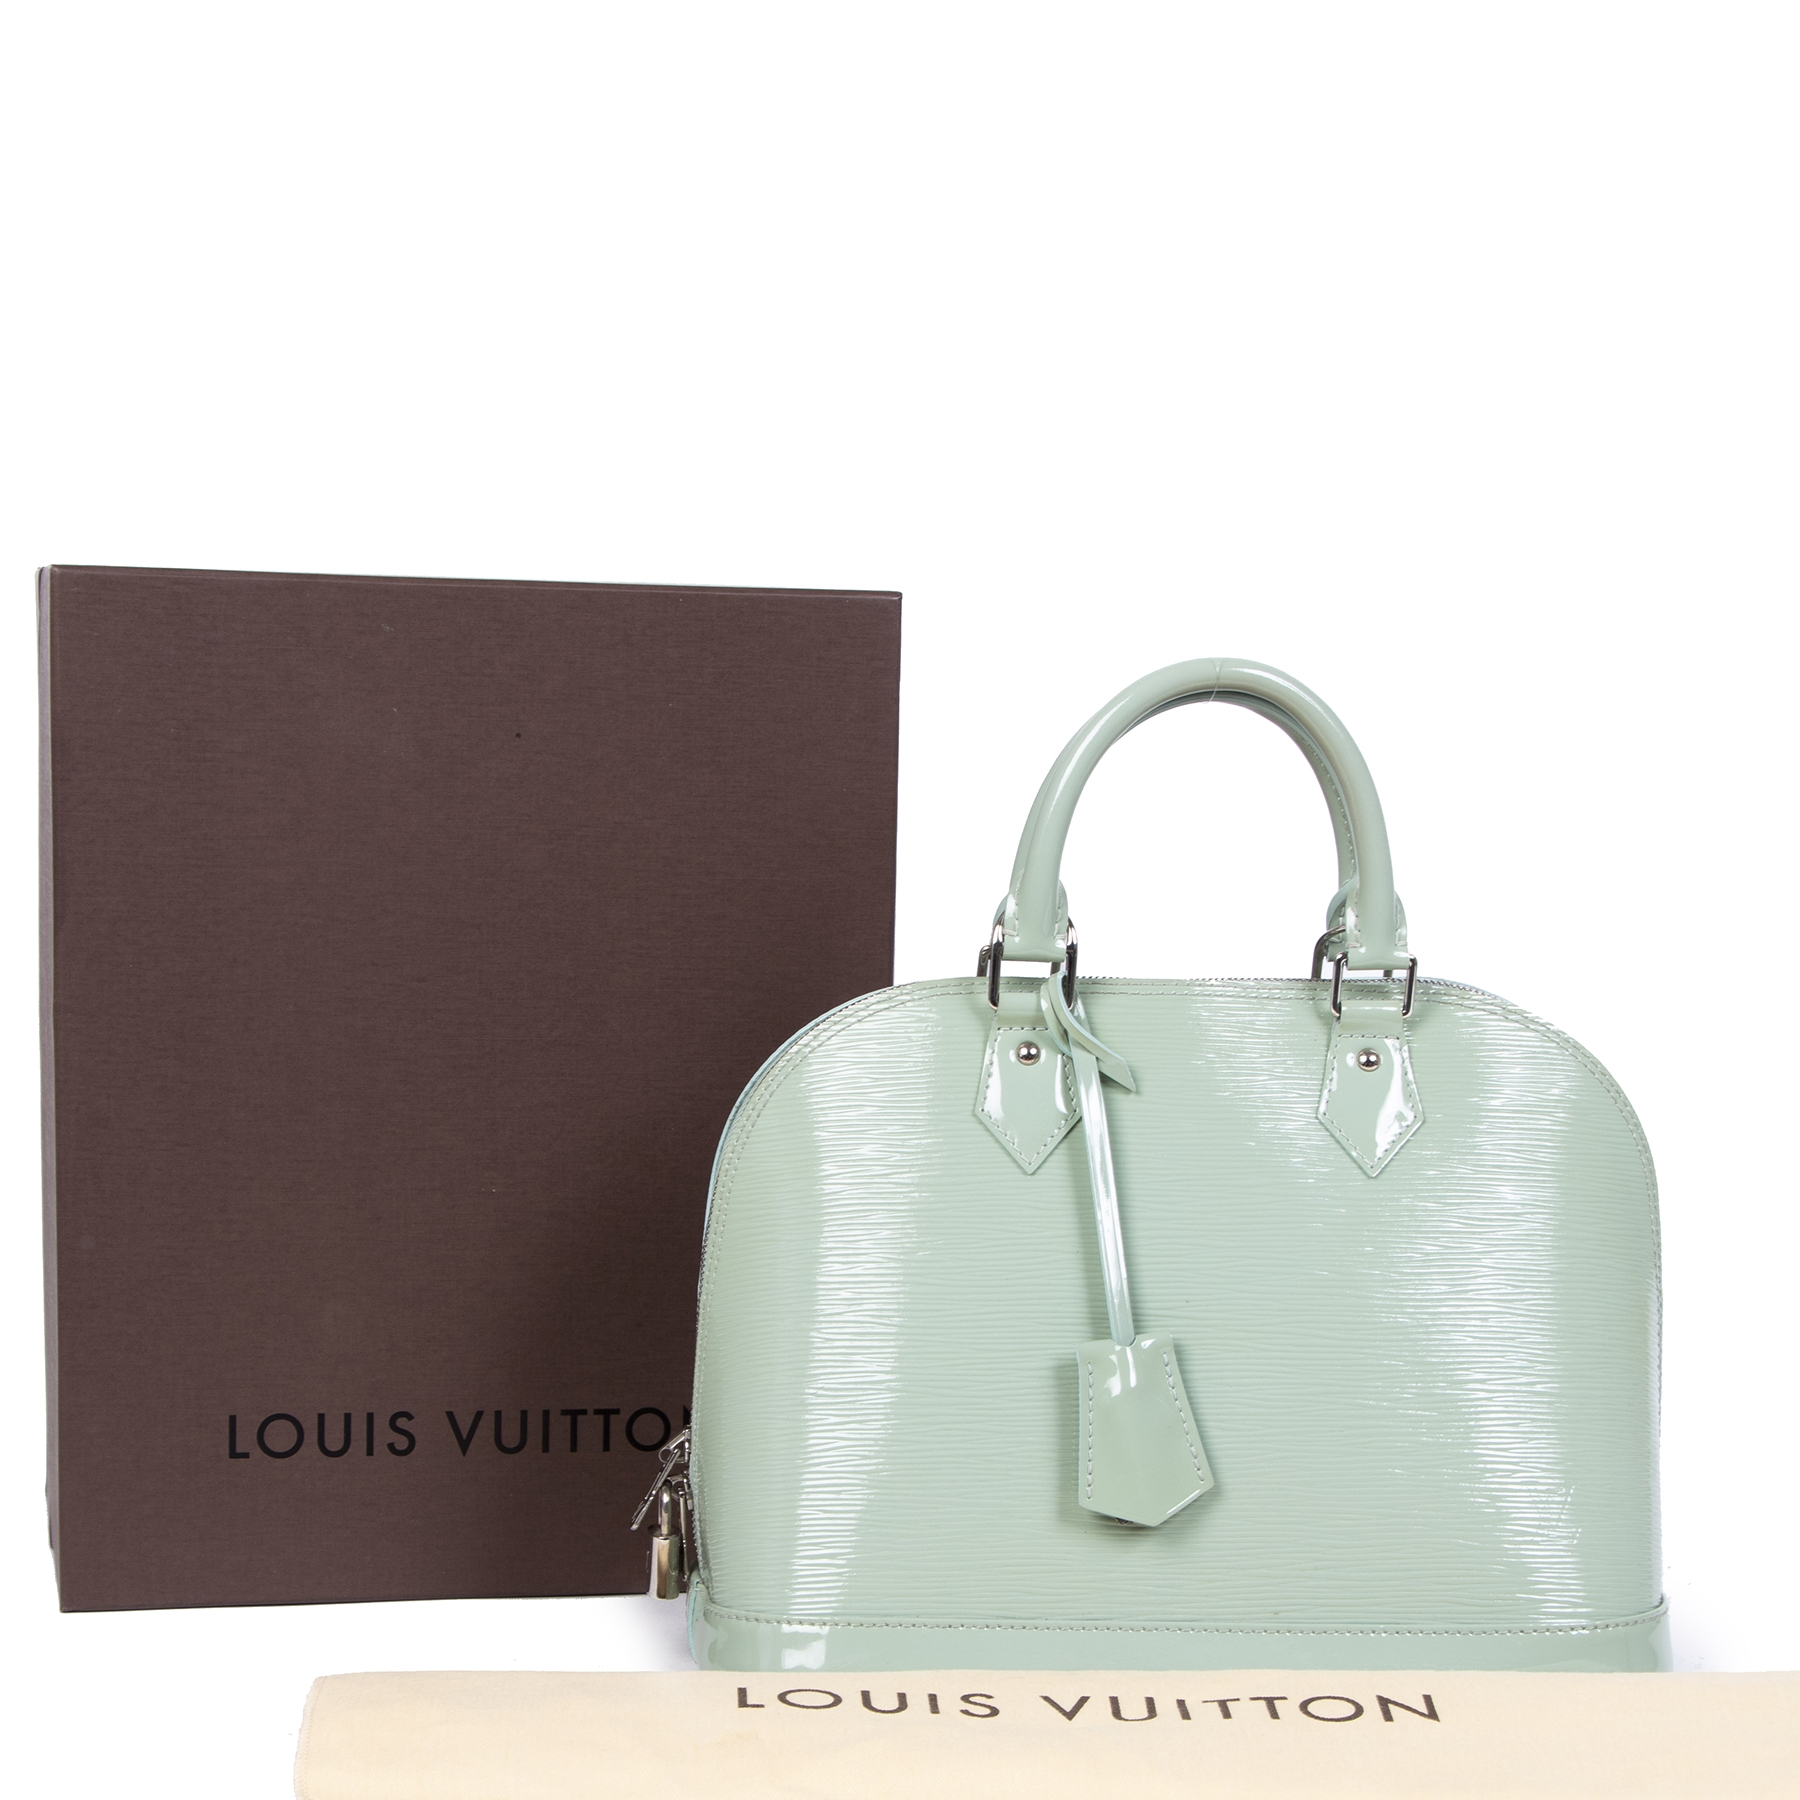 shop 100% authentic Louis Vuitton Mint Green Epi Leather Alma PM